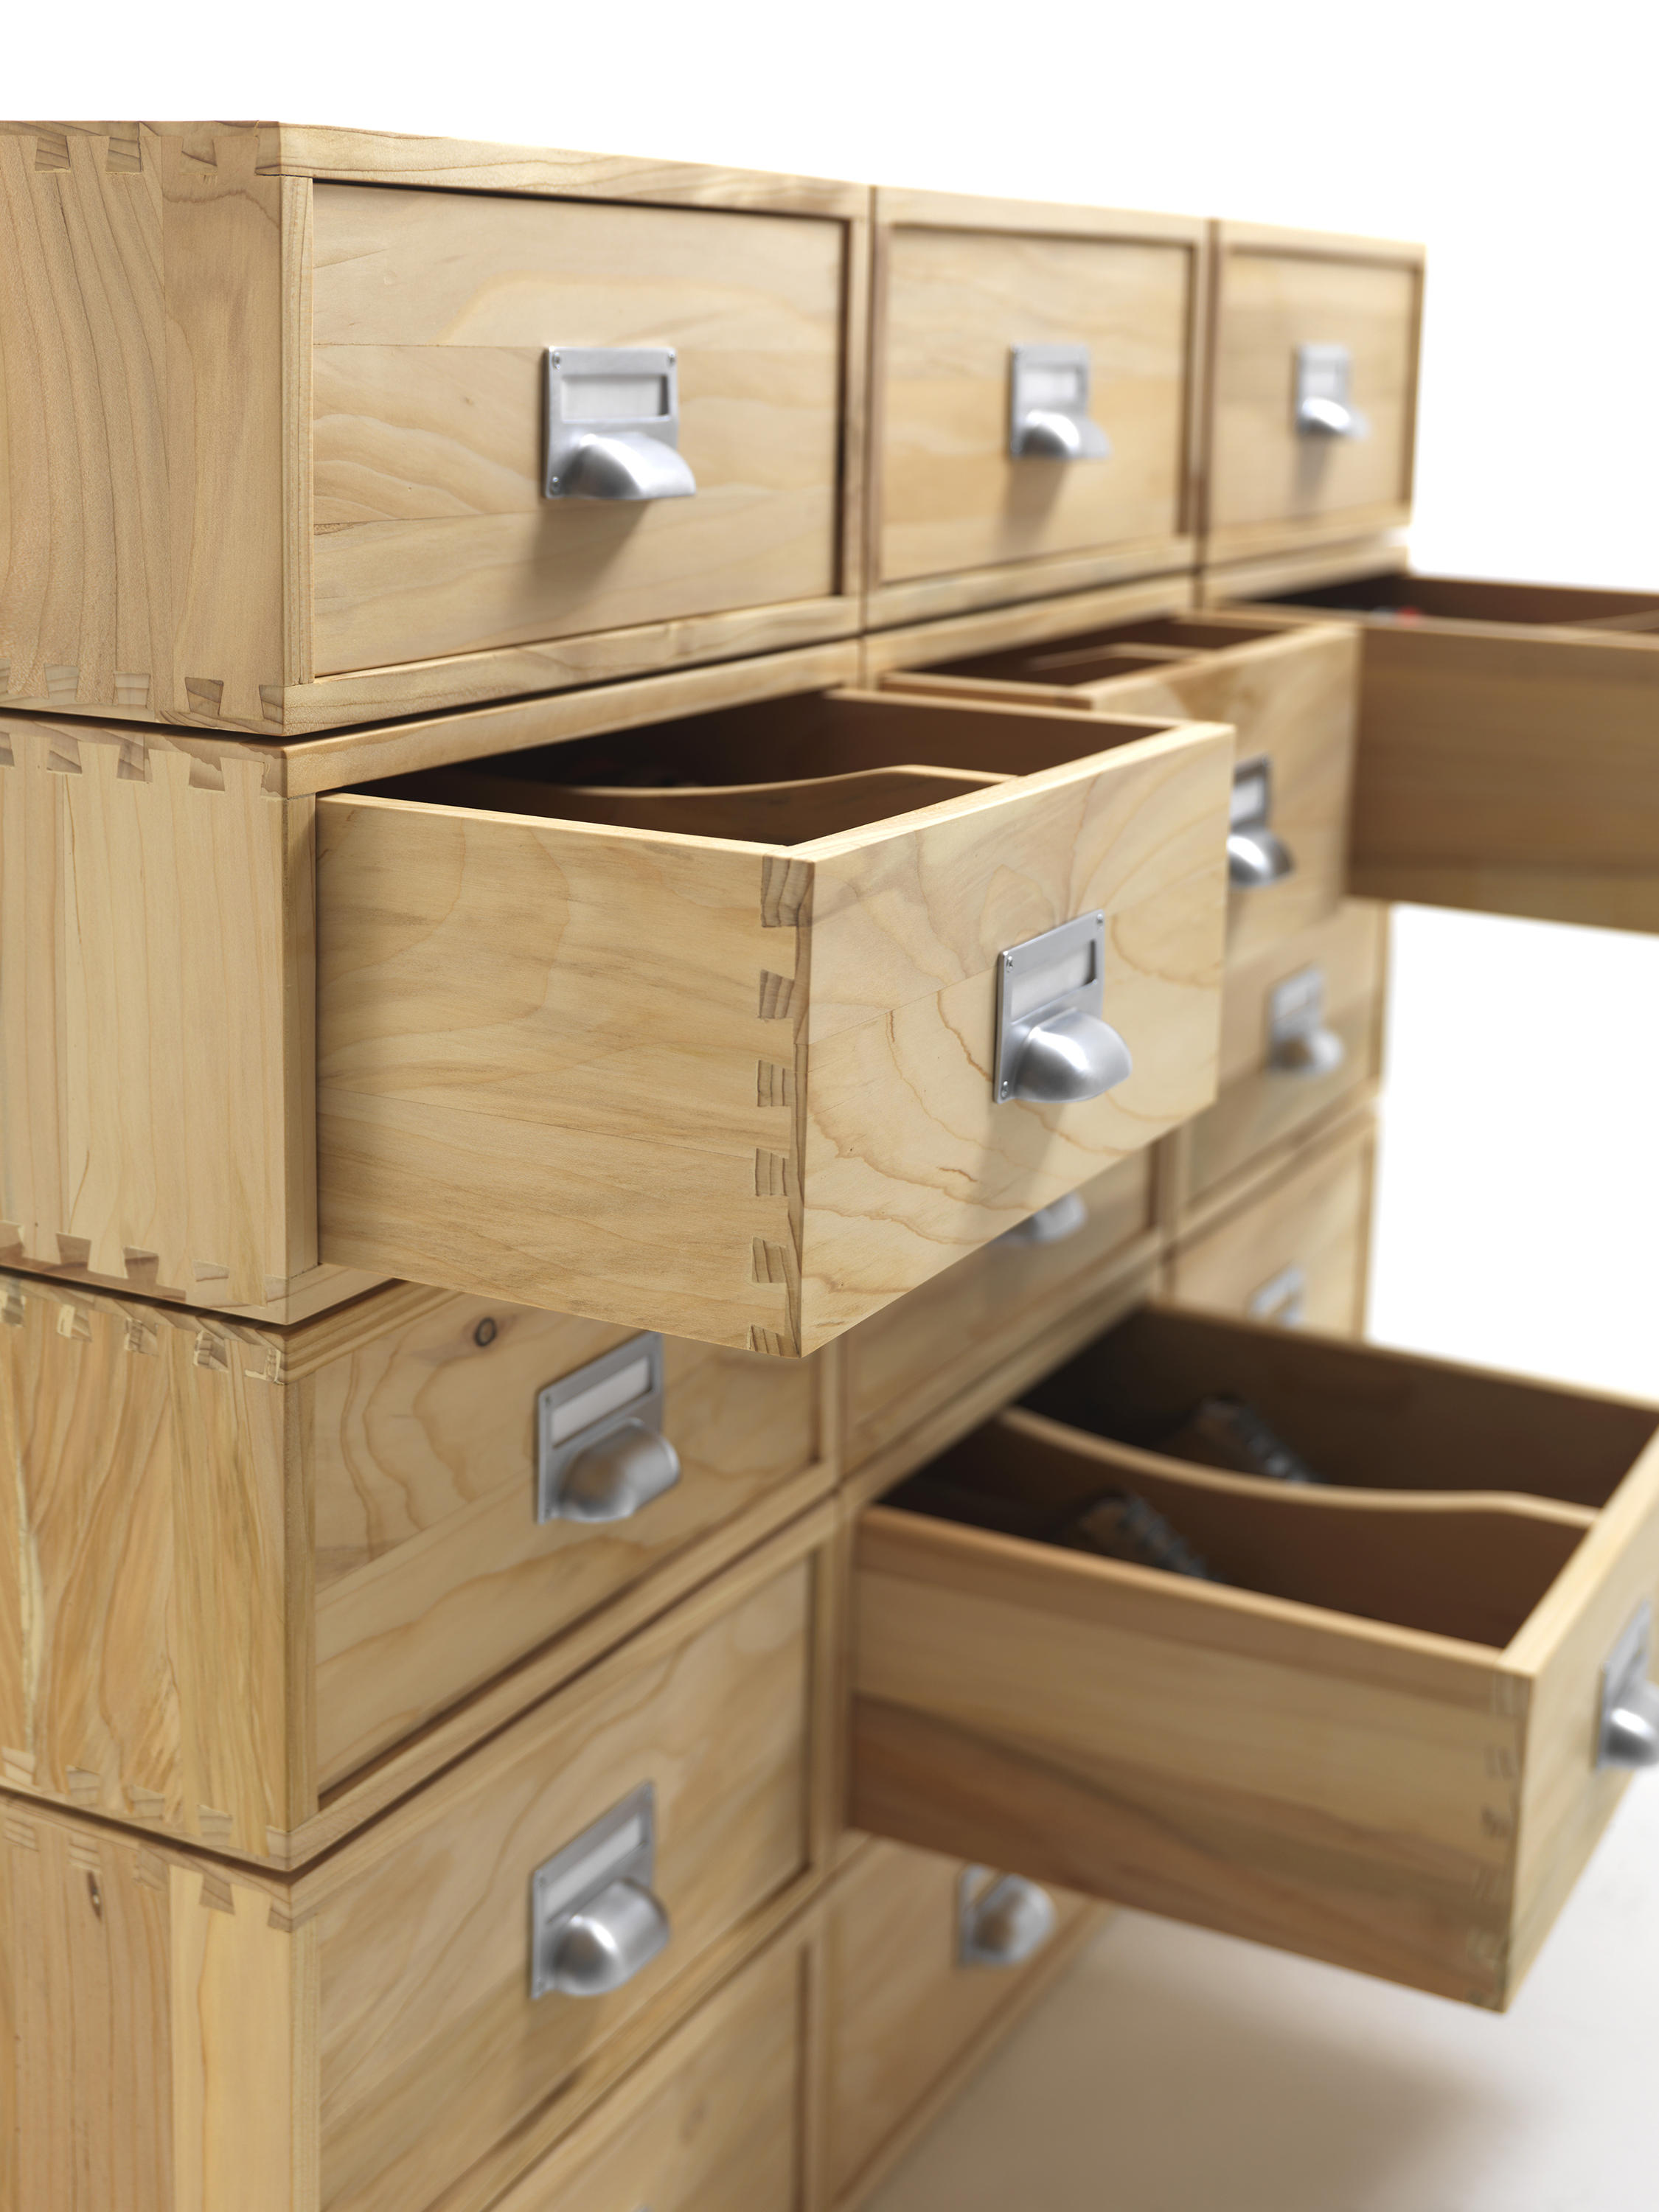 Prospectus Shoe Cabinets Racks From Riva 1920 Architonic # Muebles Riflessi